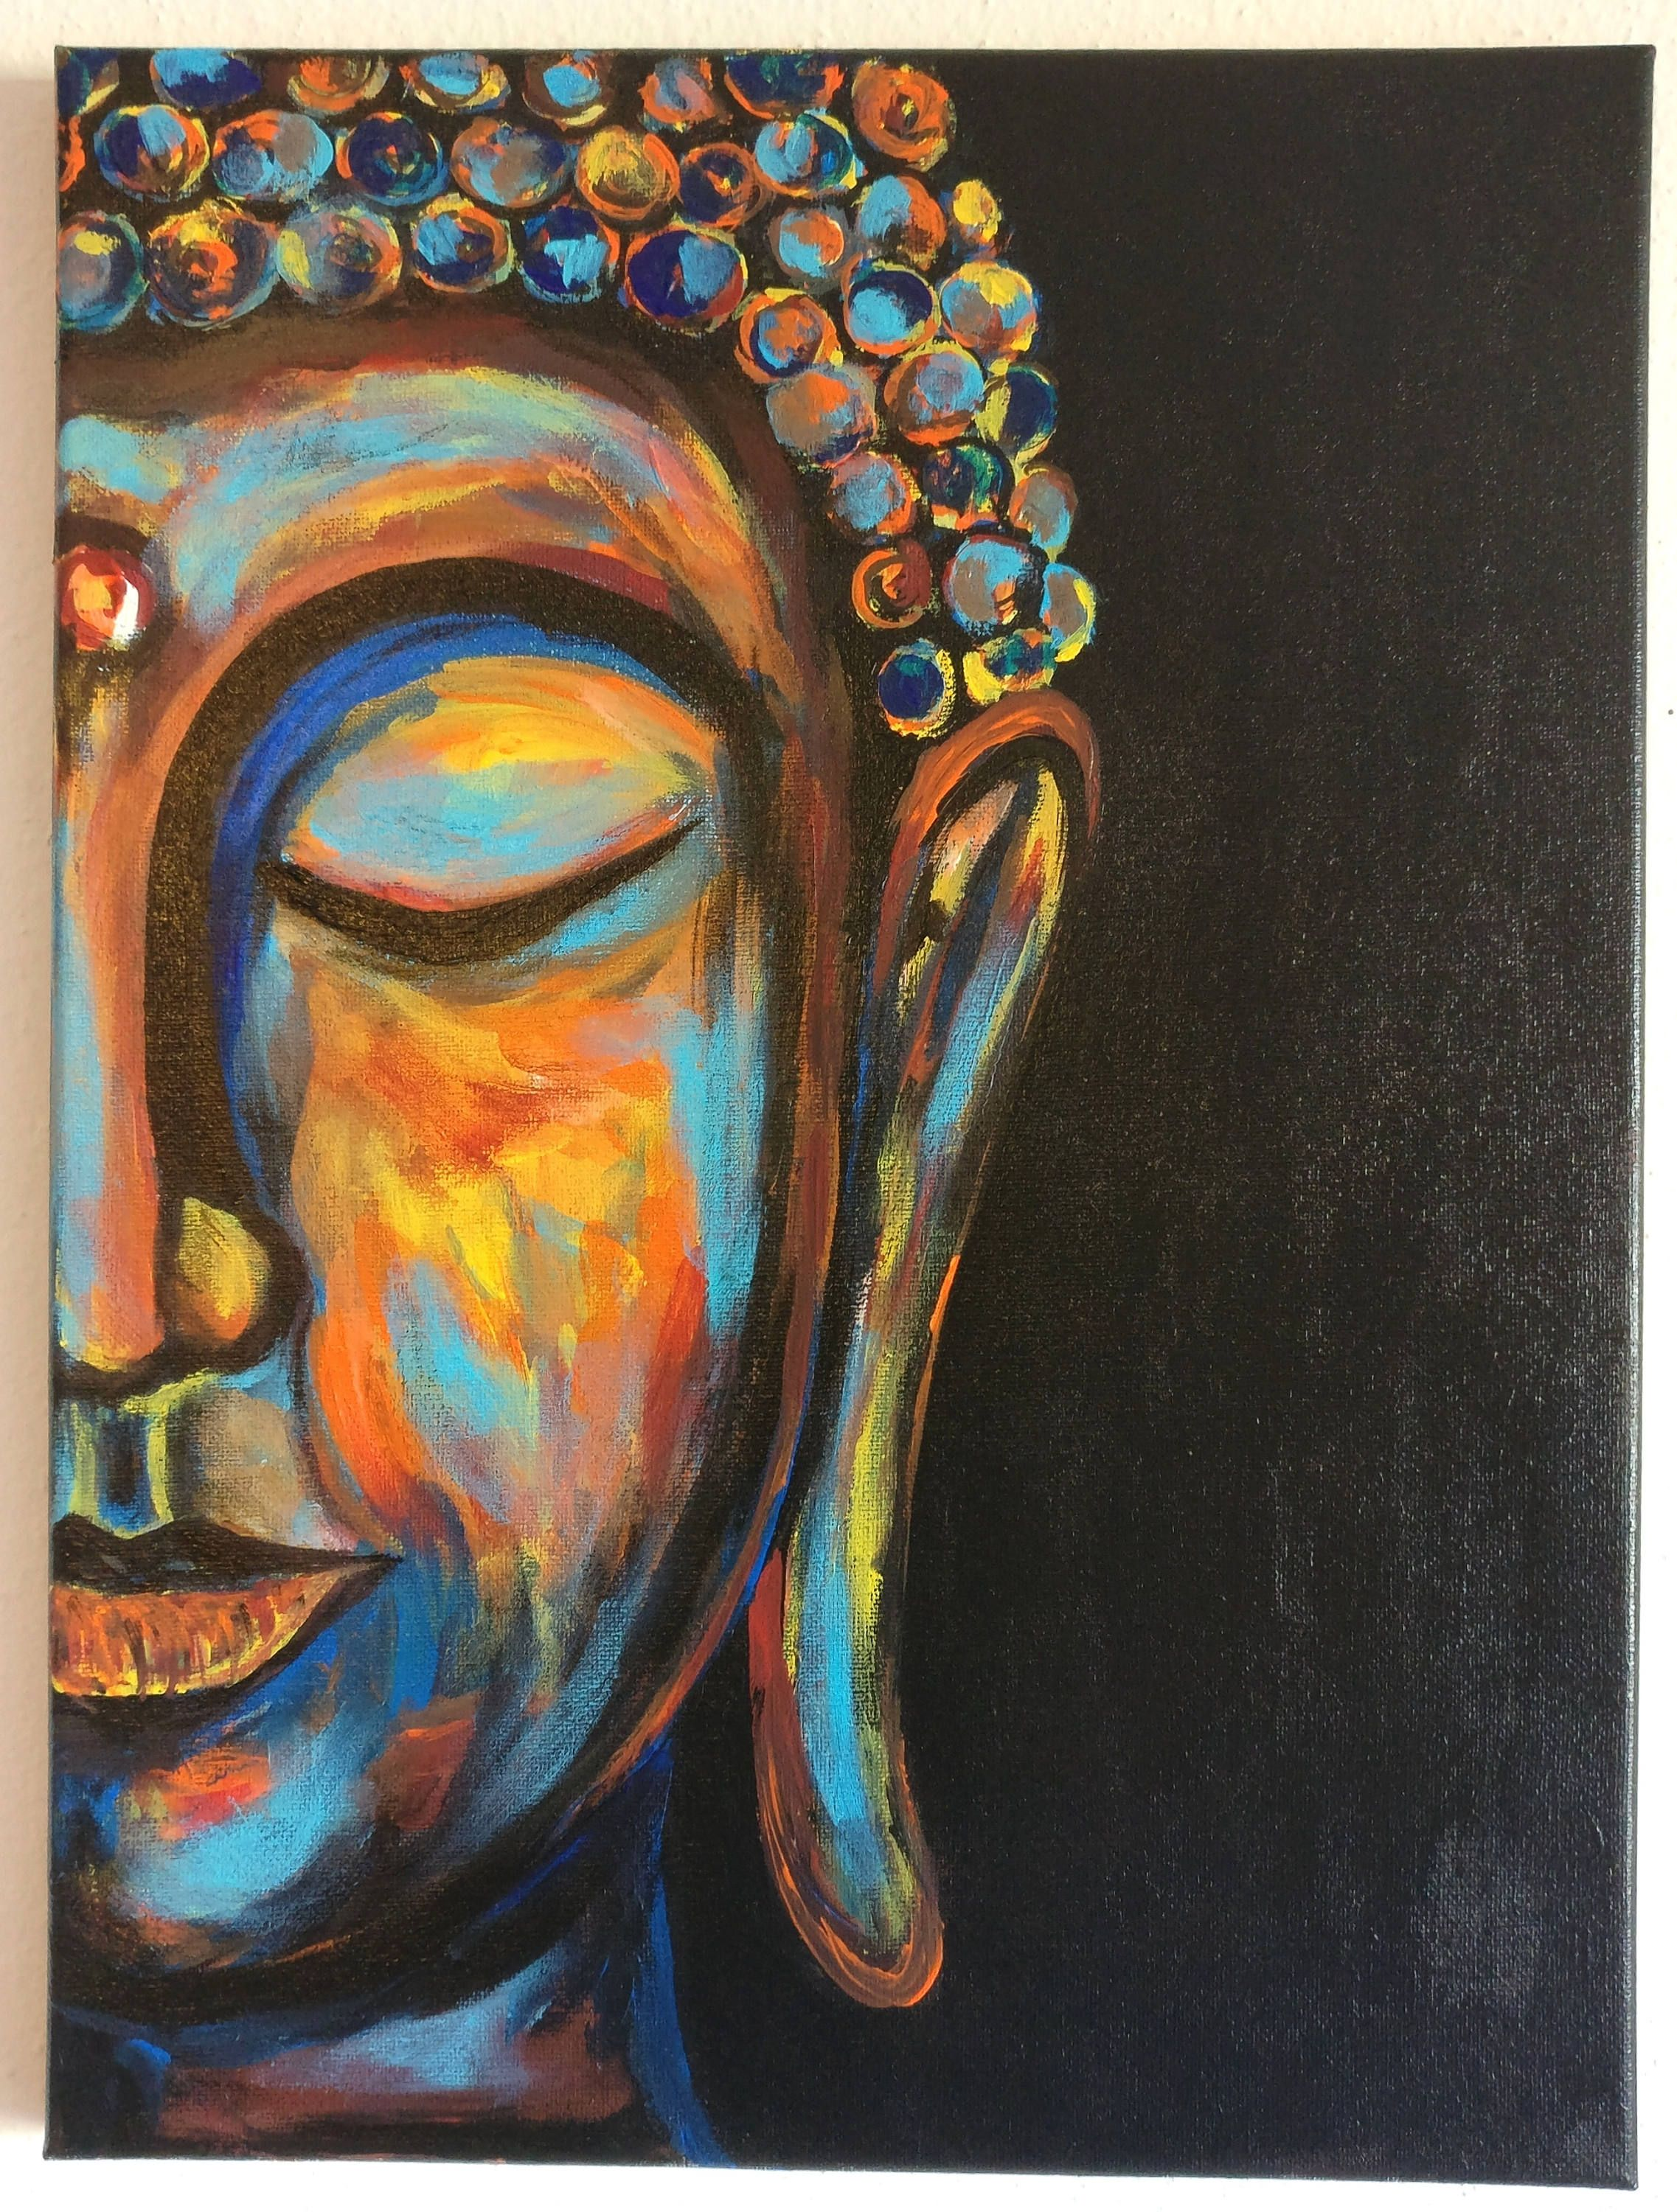 Buddha painting buddha wall art boho decor buddha face zen art canvas painting buddha decor gift for dad buddhist decor soul art by palettestory on